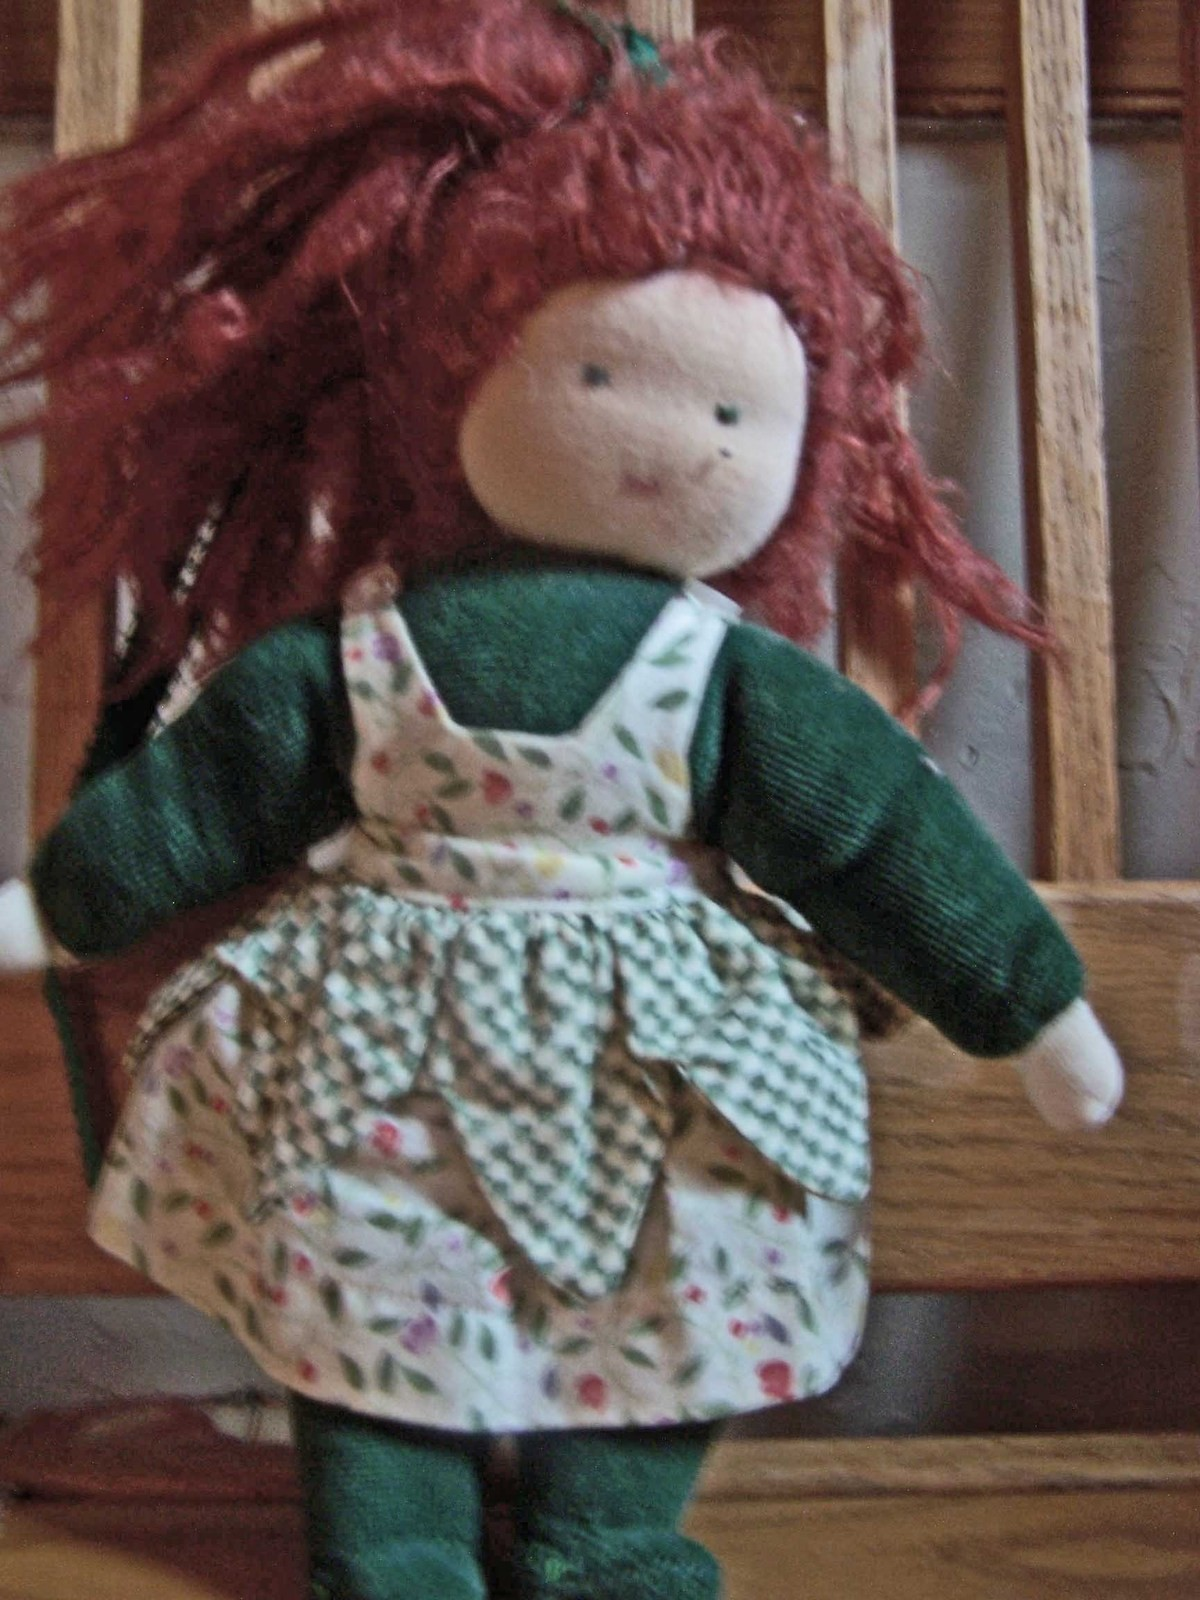 Hand Sewn Doll A Rag Dolls A Person Plushie Sewing On Cut Out Keep